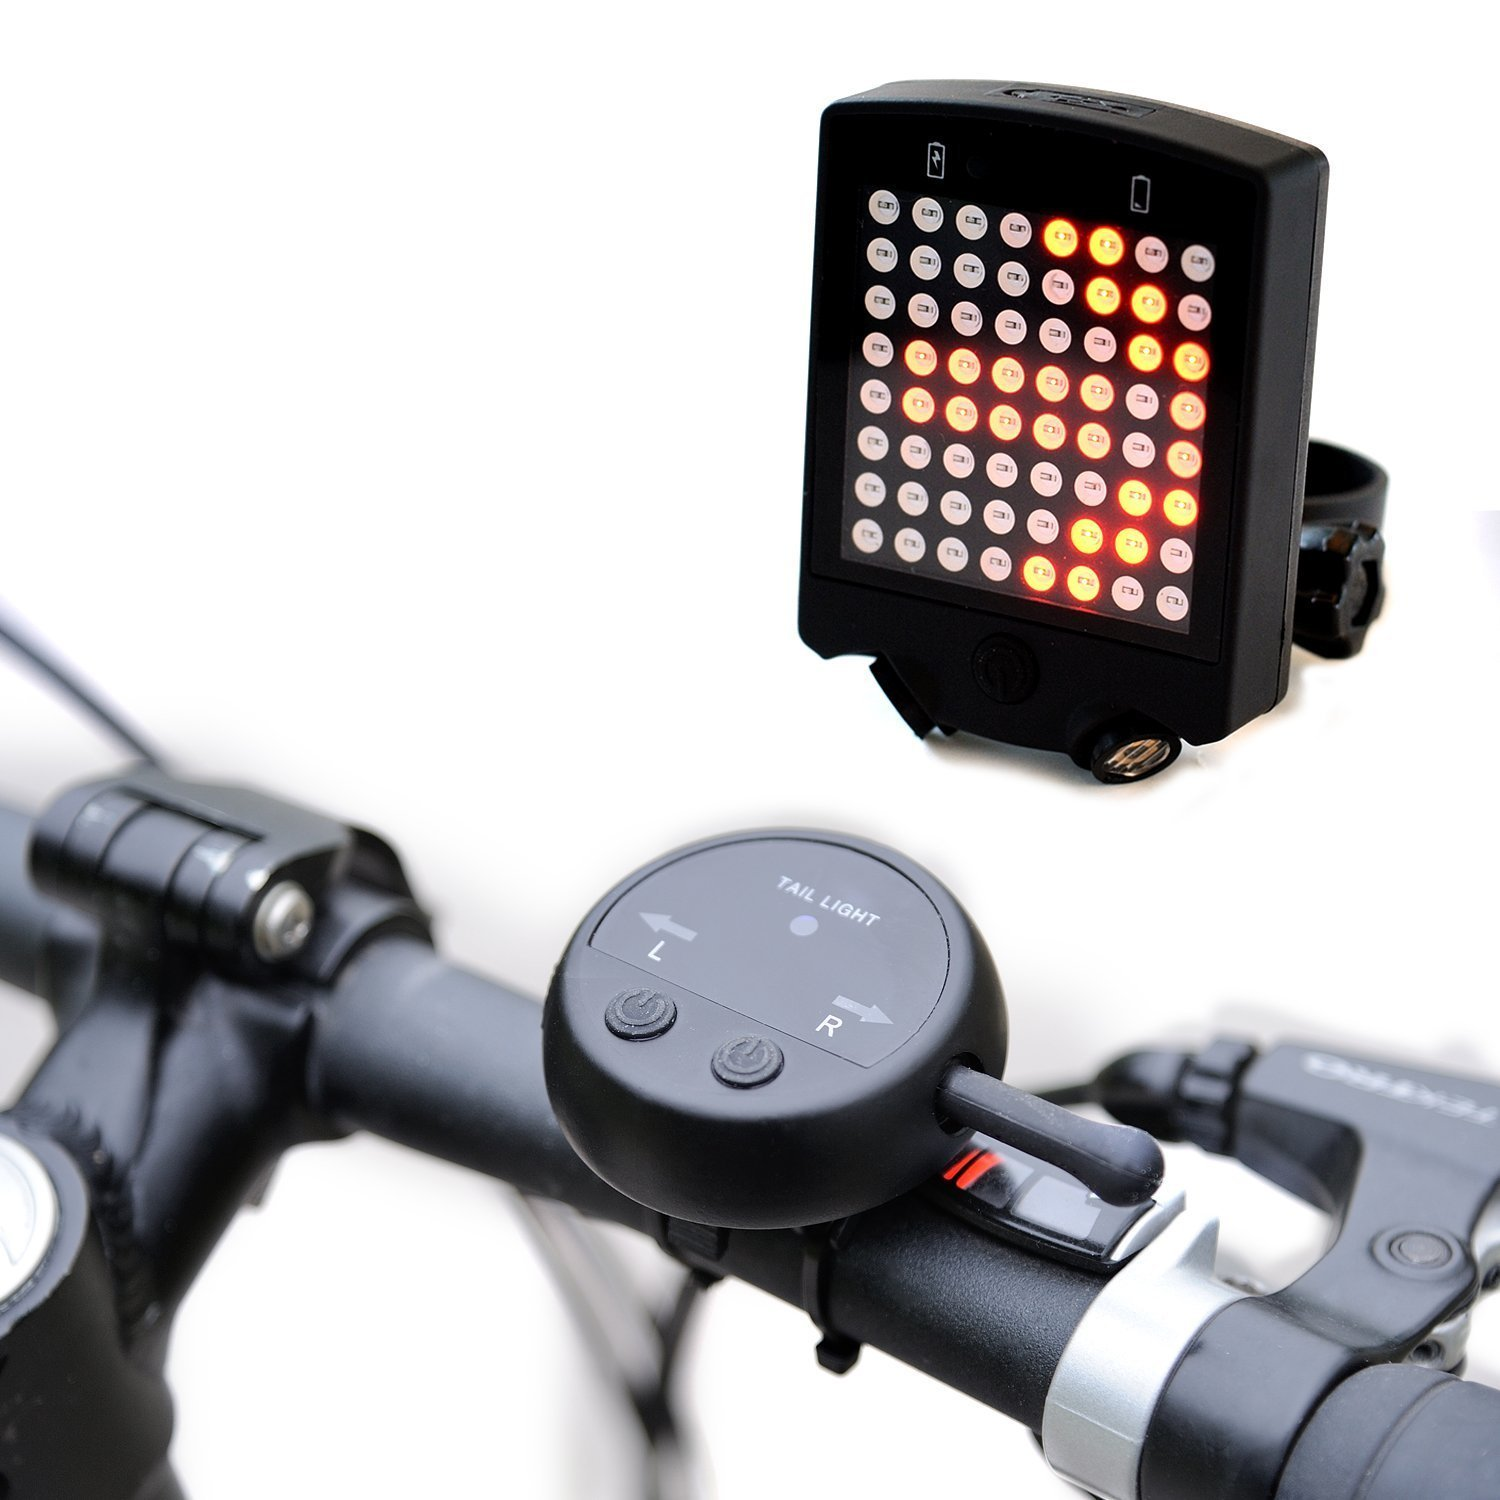 Bright 64 LED Wireless Turn Signals Bike Light- Rechargeable Led Bike Taillight- Perfect Safety Bicycle Light for Long Distance Cycling Warning Lights